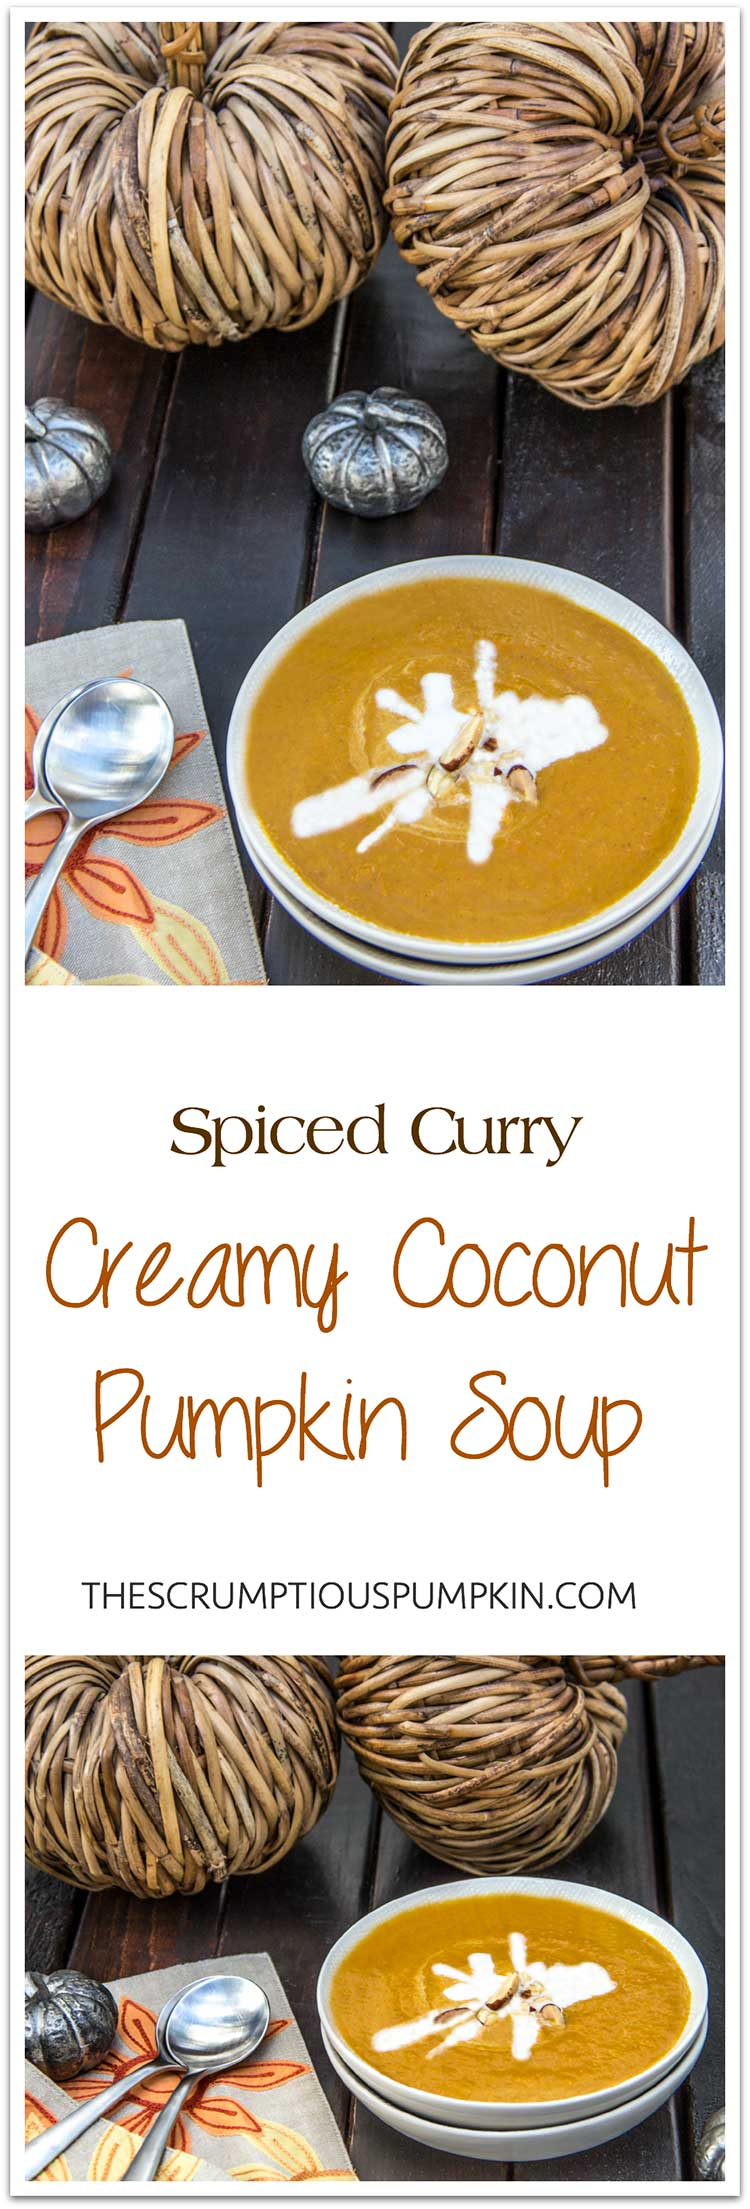 Spiced-Curry-Creamy-Coconut-Pumpkin-Soup